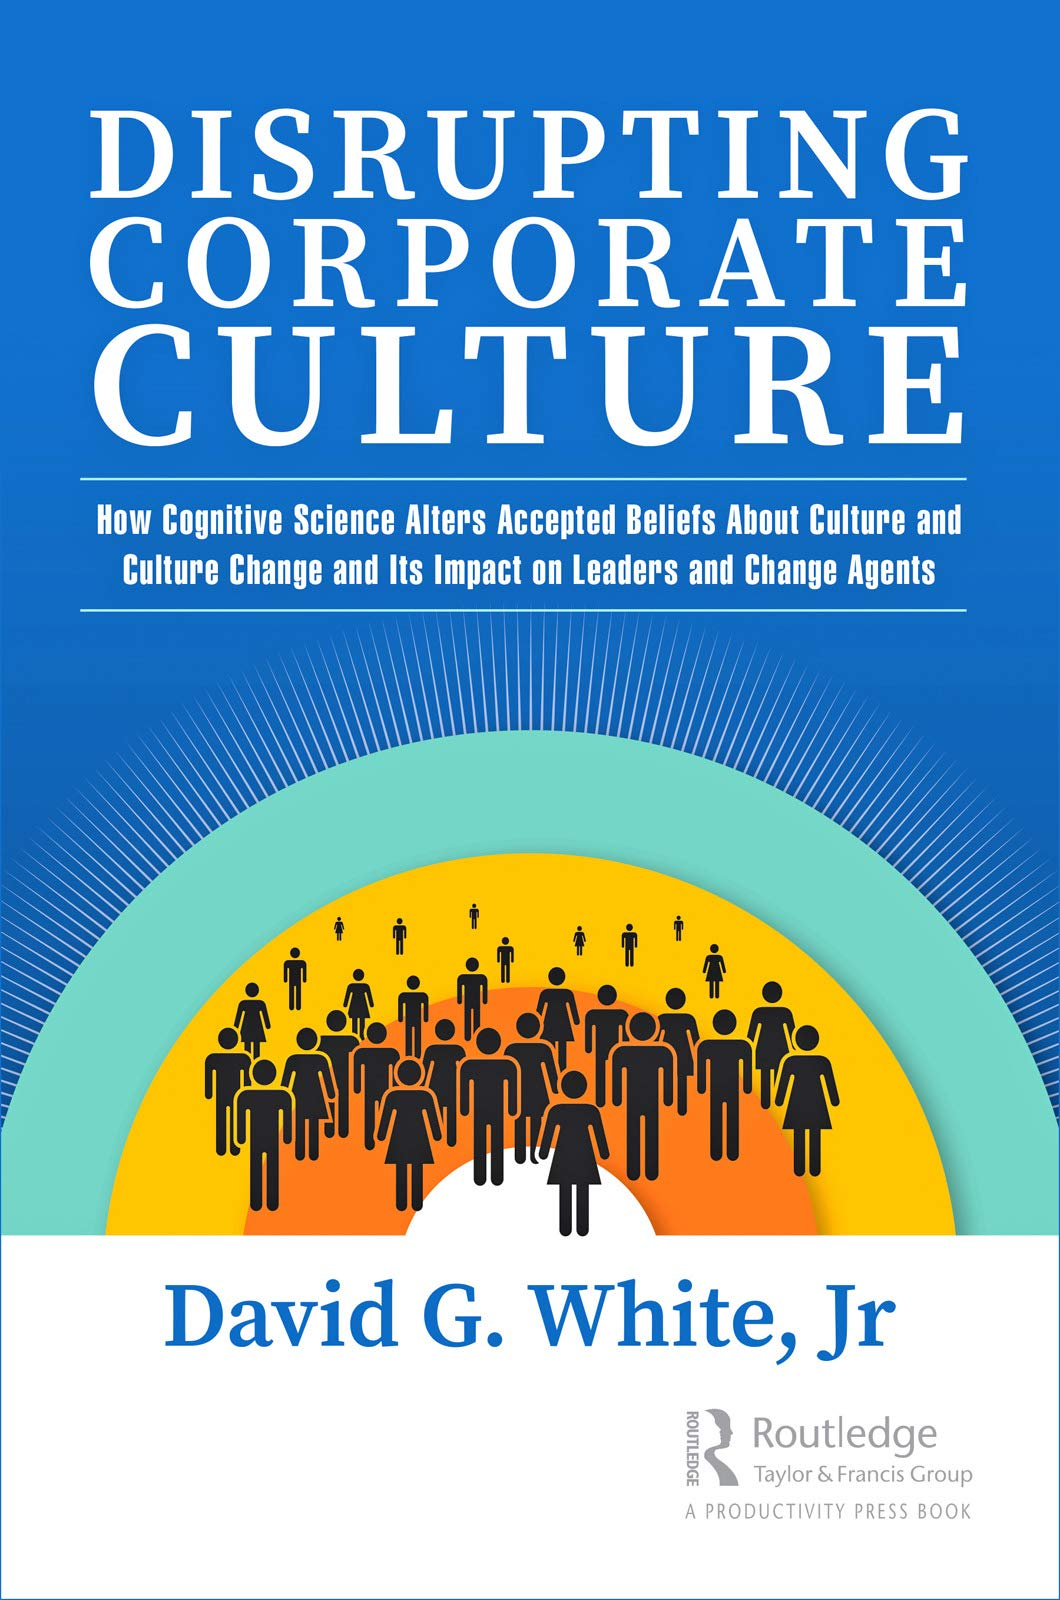 Amazon.com: Disrupting Corporate Culture: How Cognitive Science Alters Accepted Beliefs About Culture and Culture Change and Its Impact on Leaders and Change Agents eBook: White, Jr, David G.: Kindle Store